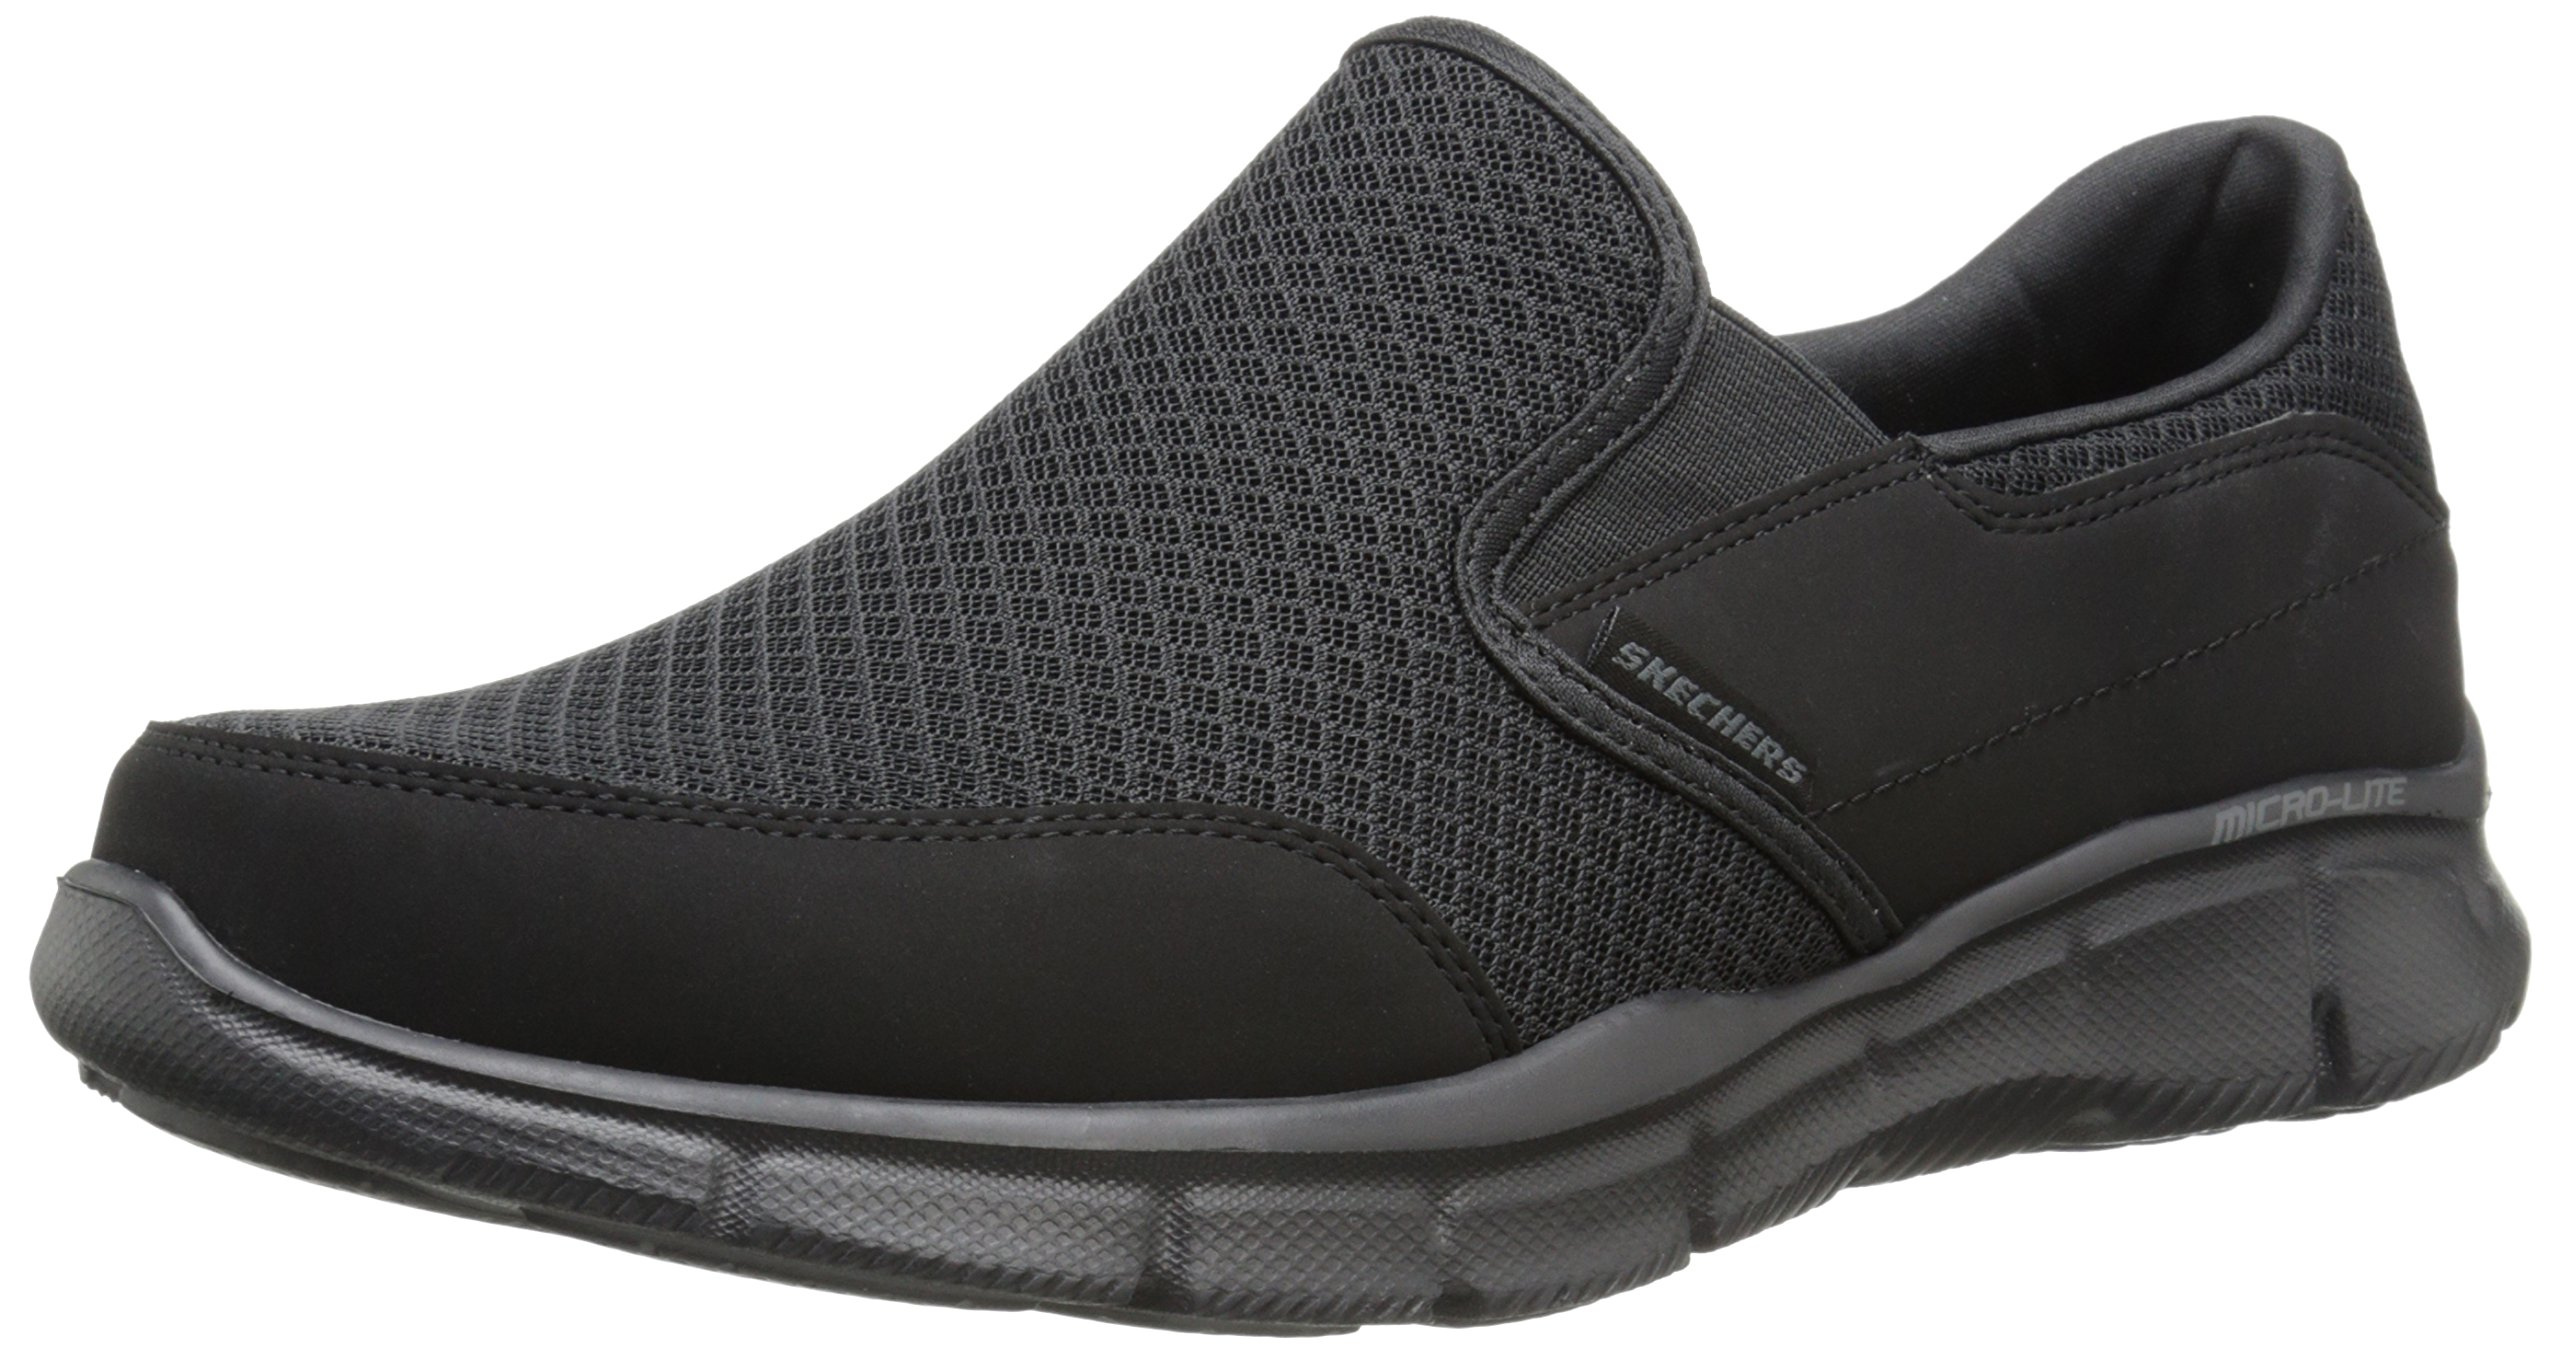 Skechers Men's Equalizer Persistent Slip-On Sneaker, Black, 10.5 XW US